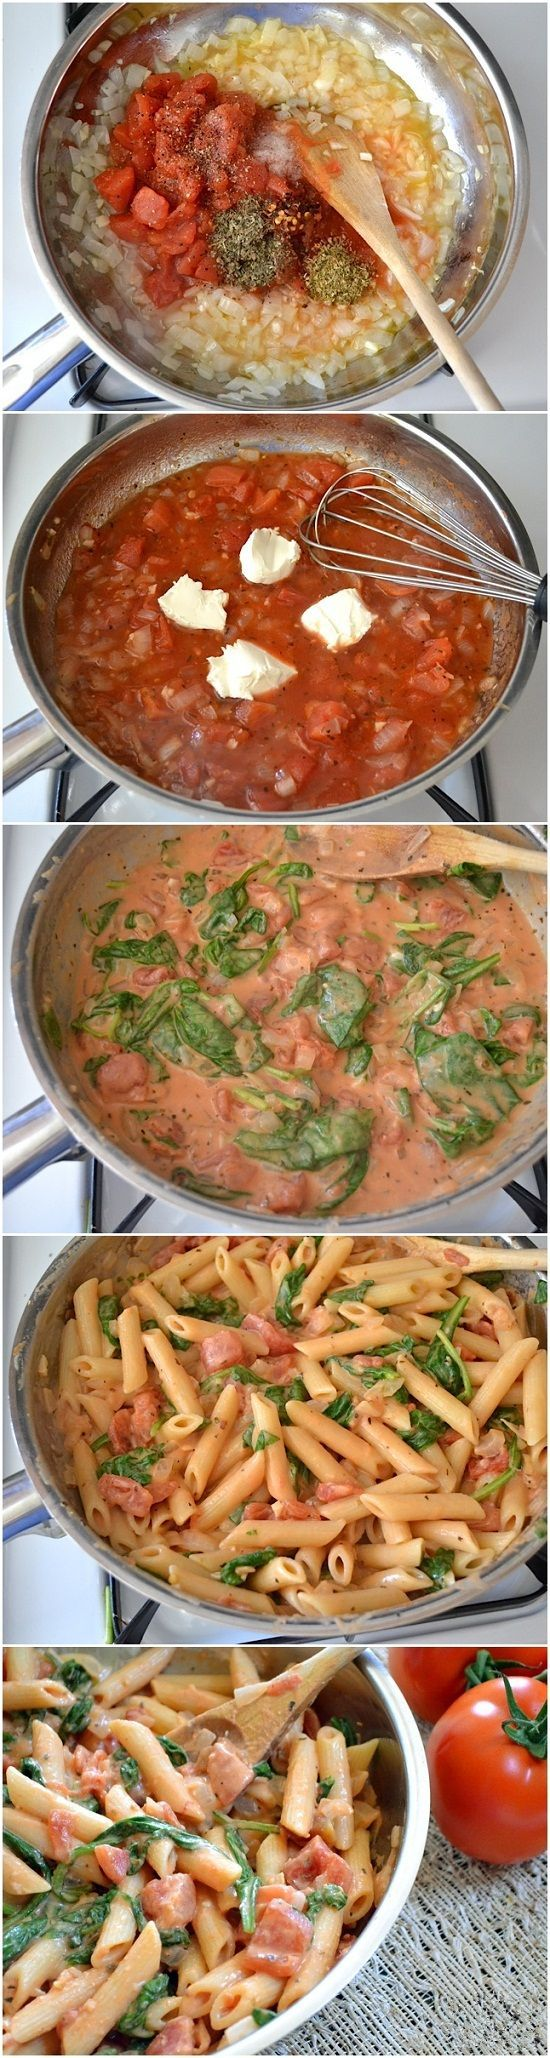 Ingredients   1 Tbsp olive oil   1 small onion   2 cloves garlic   1 (15 oz.) can diced tomatoes   ? tsp dried oregano   ? tsp dried basil   pinch red pepper flakes (optional)   freshly cracked pepper to taste   ? tsp salt   2 Tbsp tomato paste   2 oz. cream cheese   ? cup grated Parmesan   ? lb. penne pasta   ? (9 oz.) bag fresh spinach.